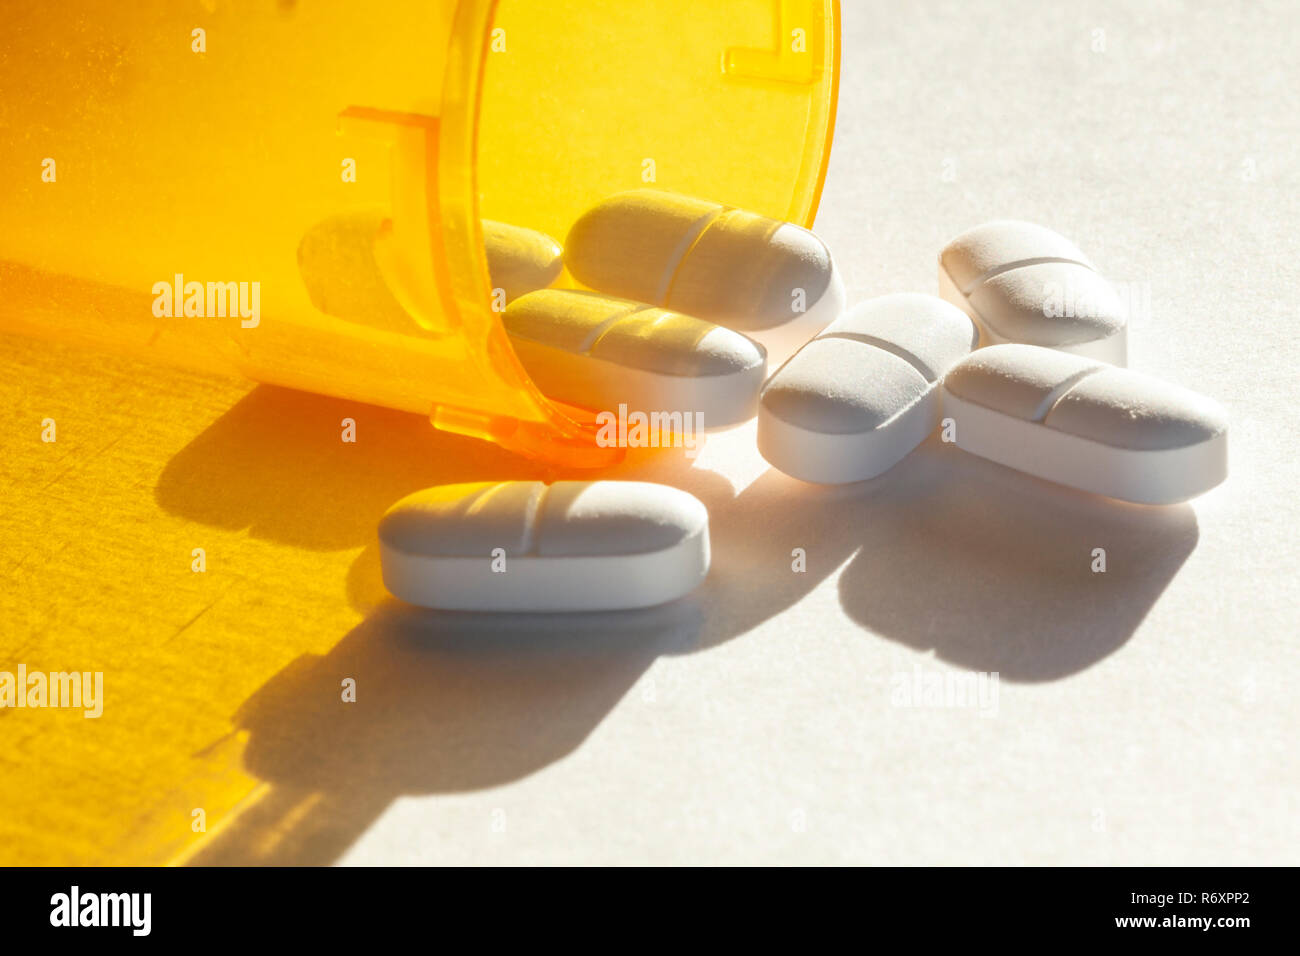 WA17036-00...WASHINGTON - Acetaminophen Hydrocodone pills spilling out of a bottle. - Stock Image